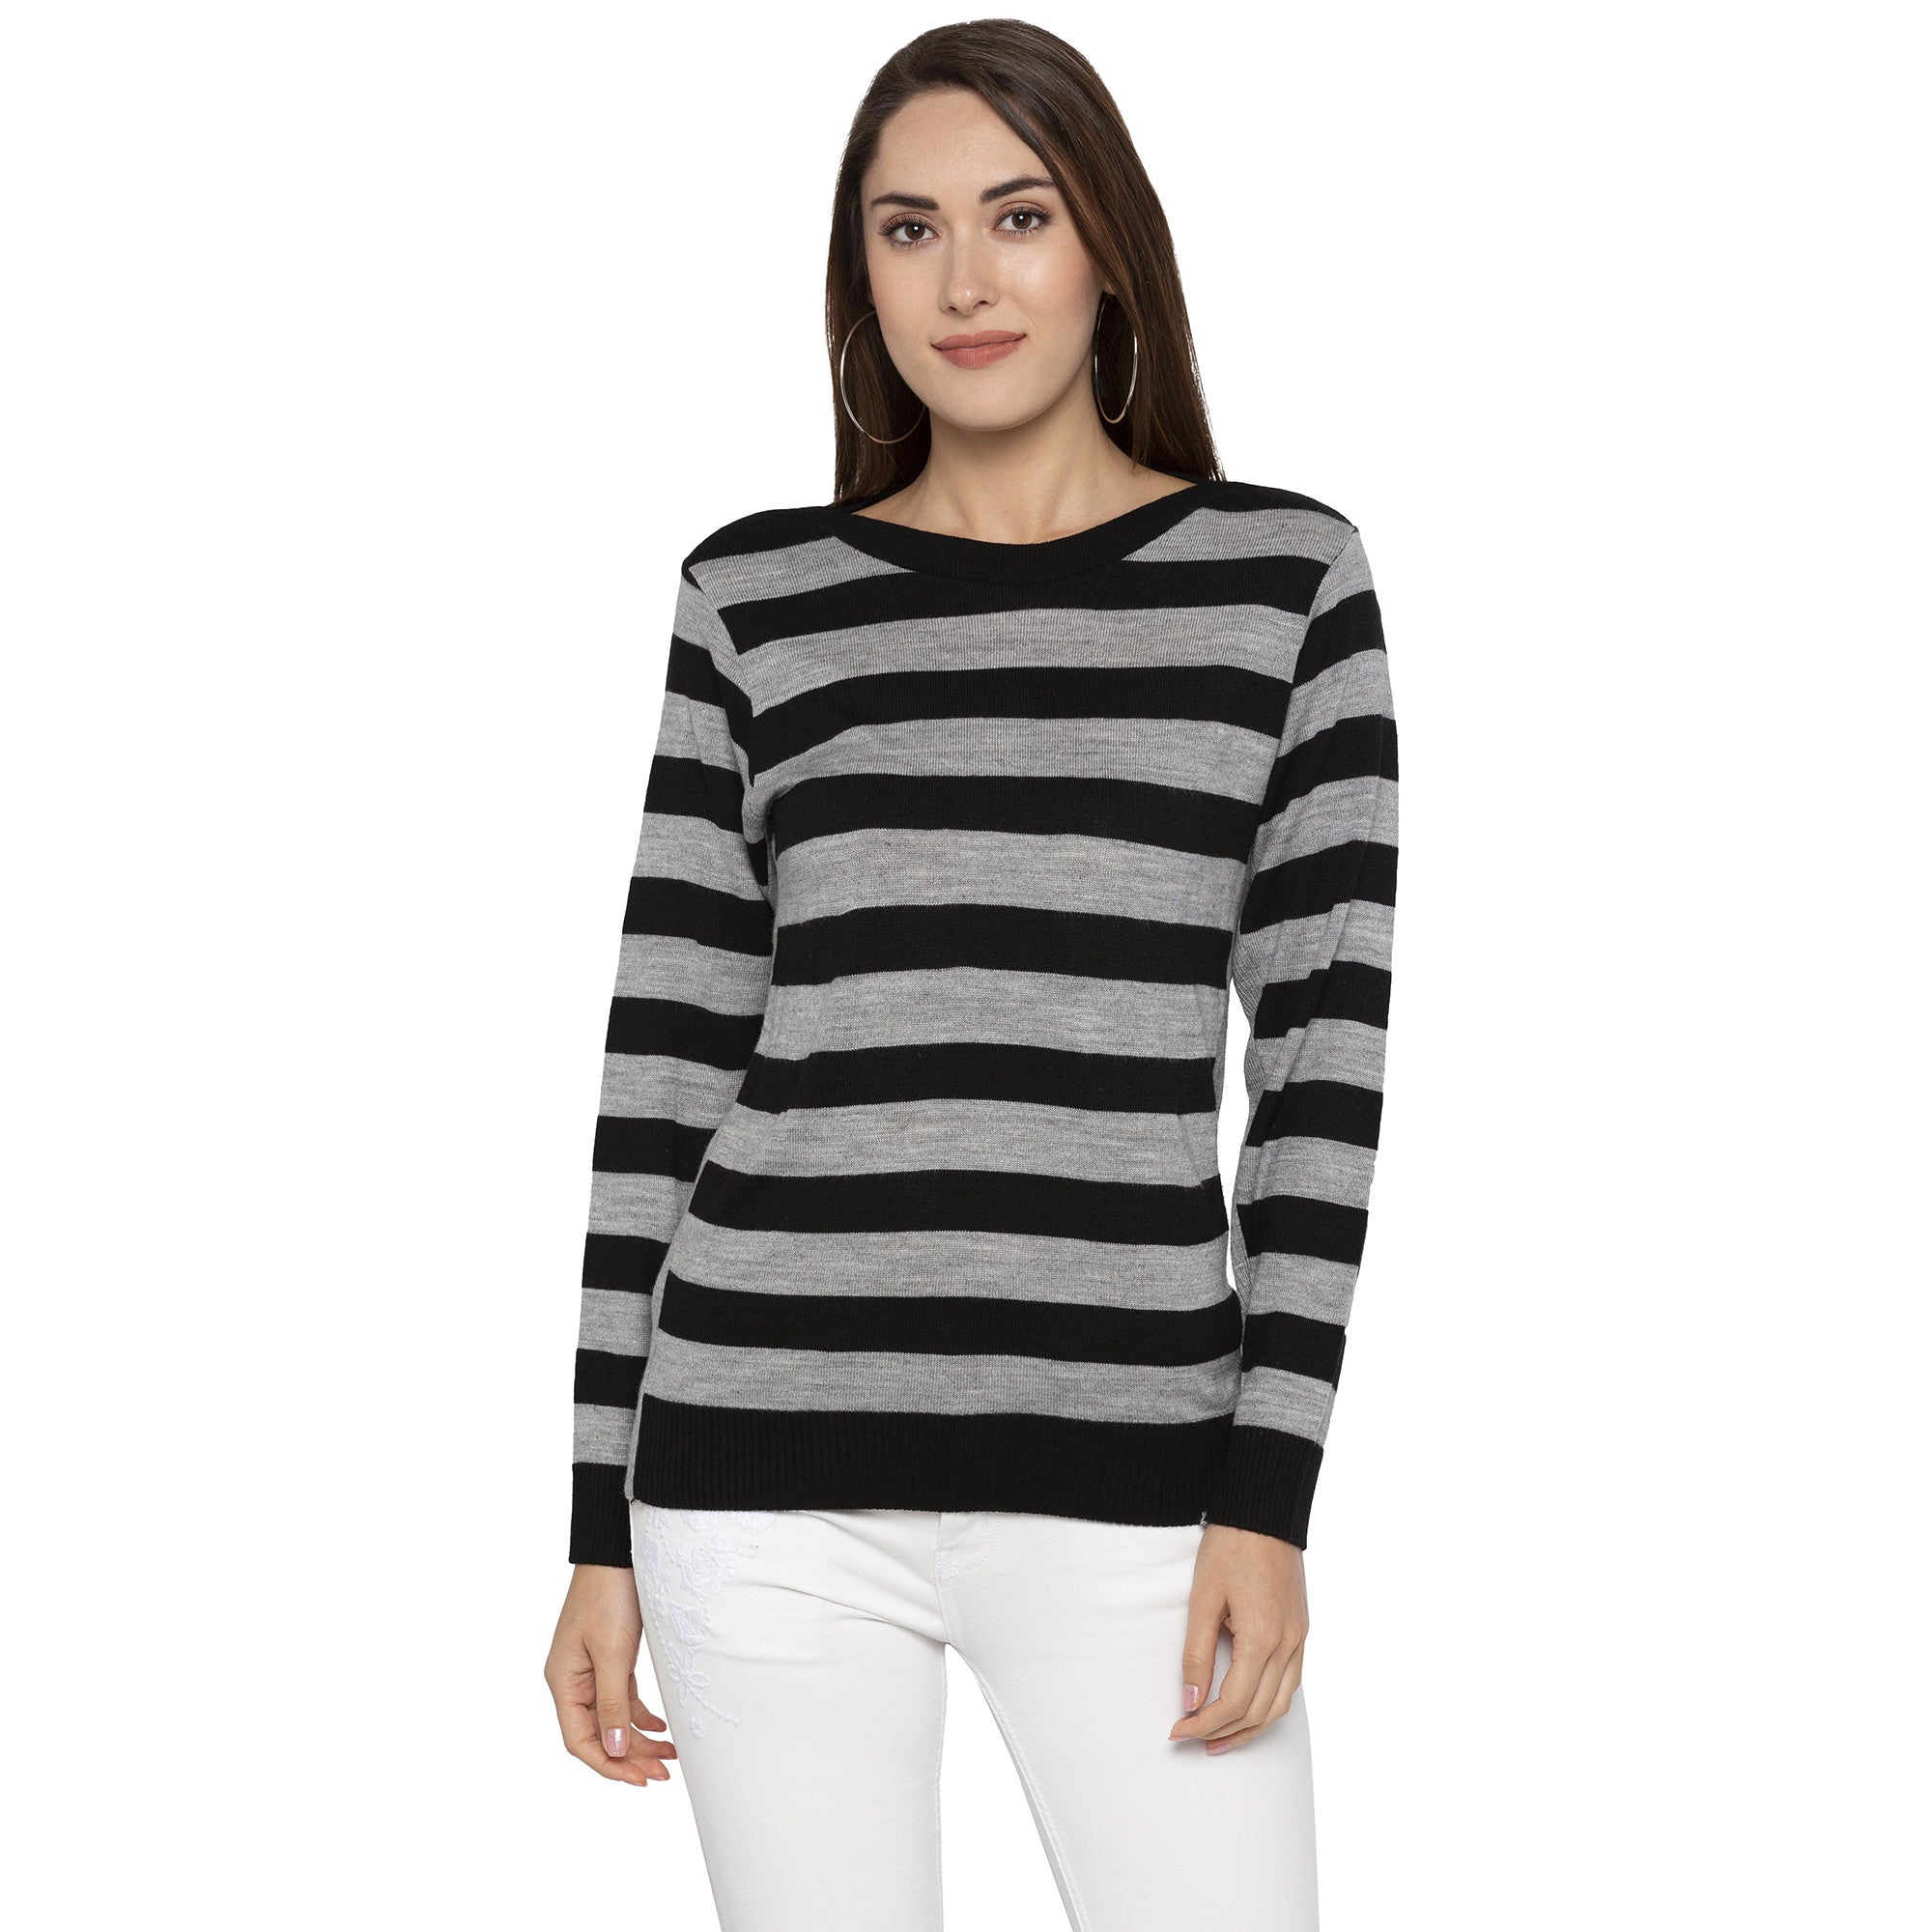 Casual Black Color Striped Regular Fit Tops-1